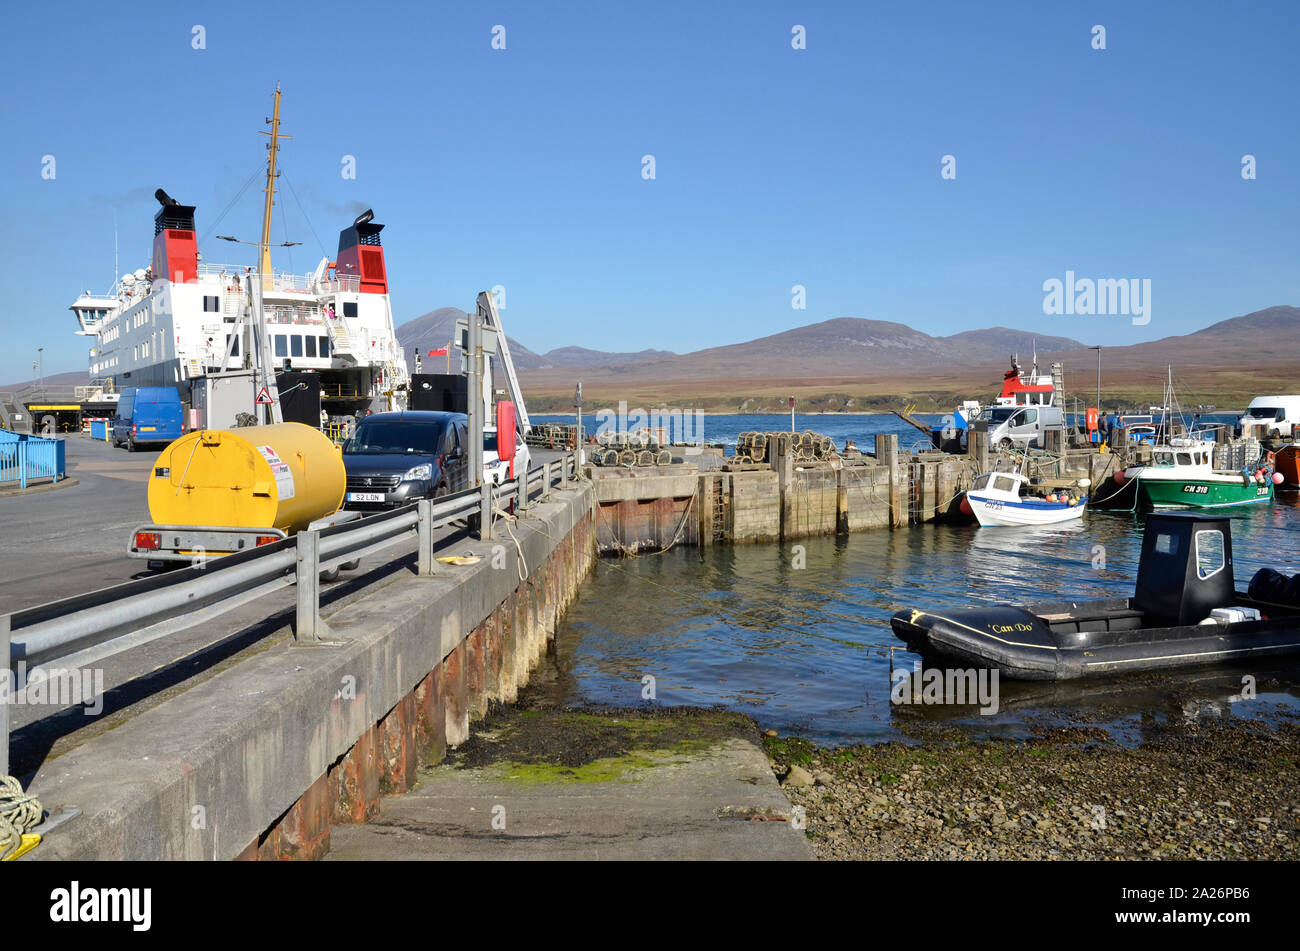 MV Finlaggan, a Caledonian MacBrayne island ferry at Port Askaig on the Scottish Island of Islay. The hills of Jura can be seen in the background. Stock Photo